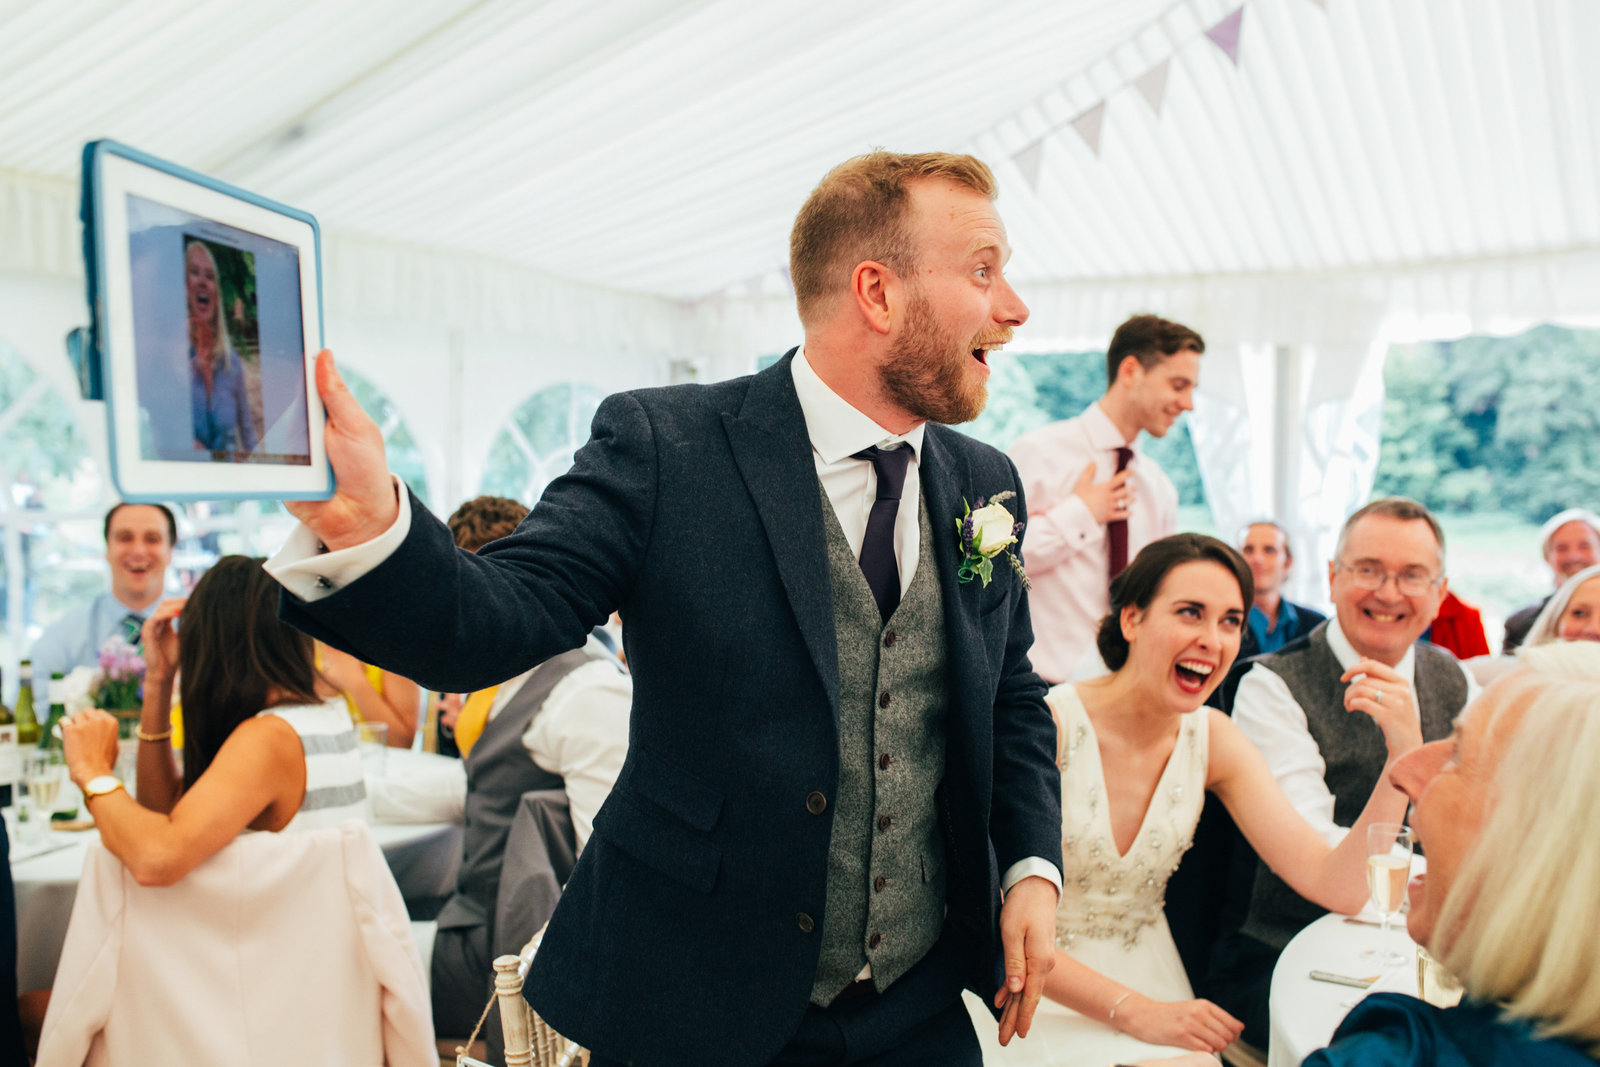 Groom laughing and animated during his speech surrounded by wedding guests in a white marquee